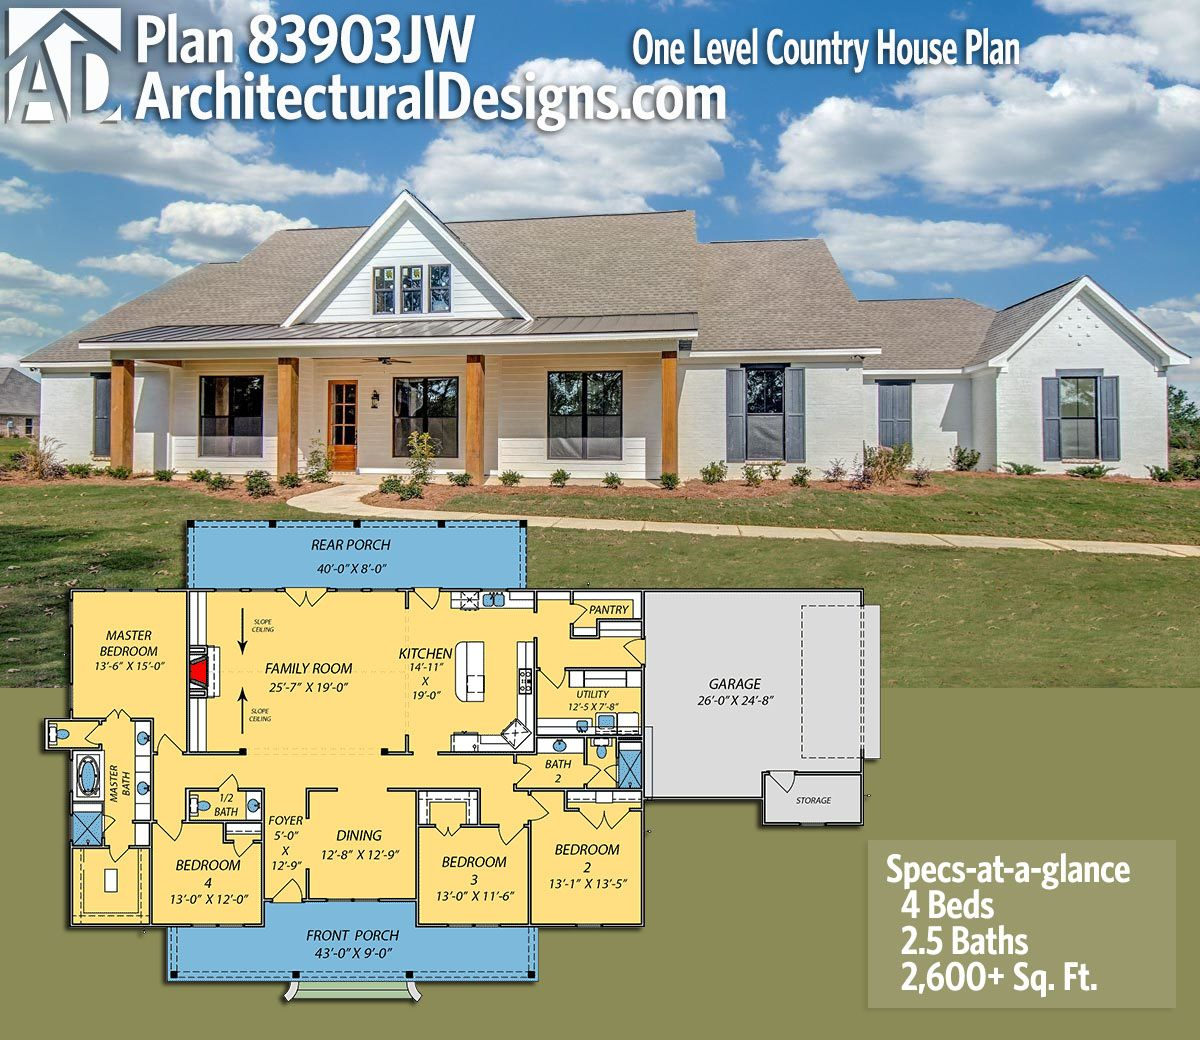 Plan 83903jw one level country house plan architectural for Architectural house plan